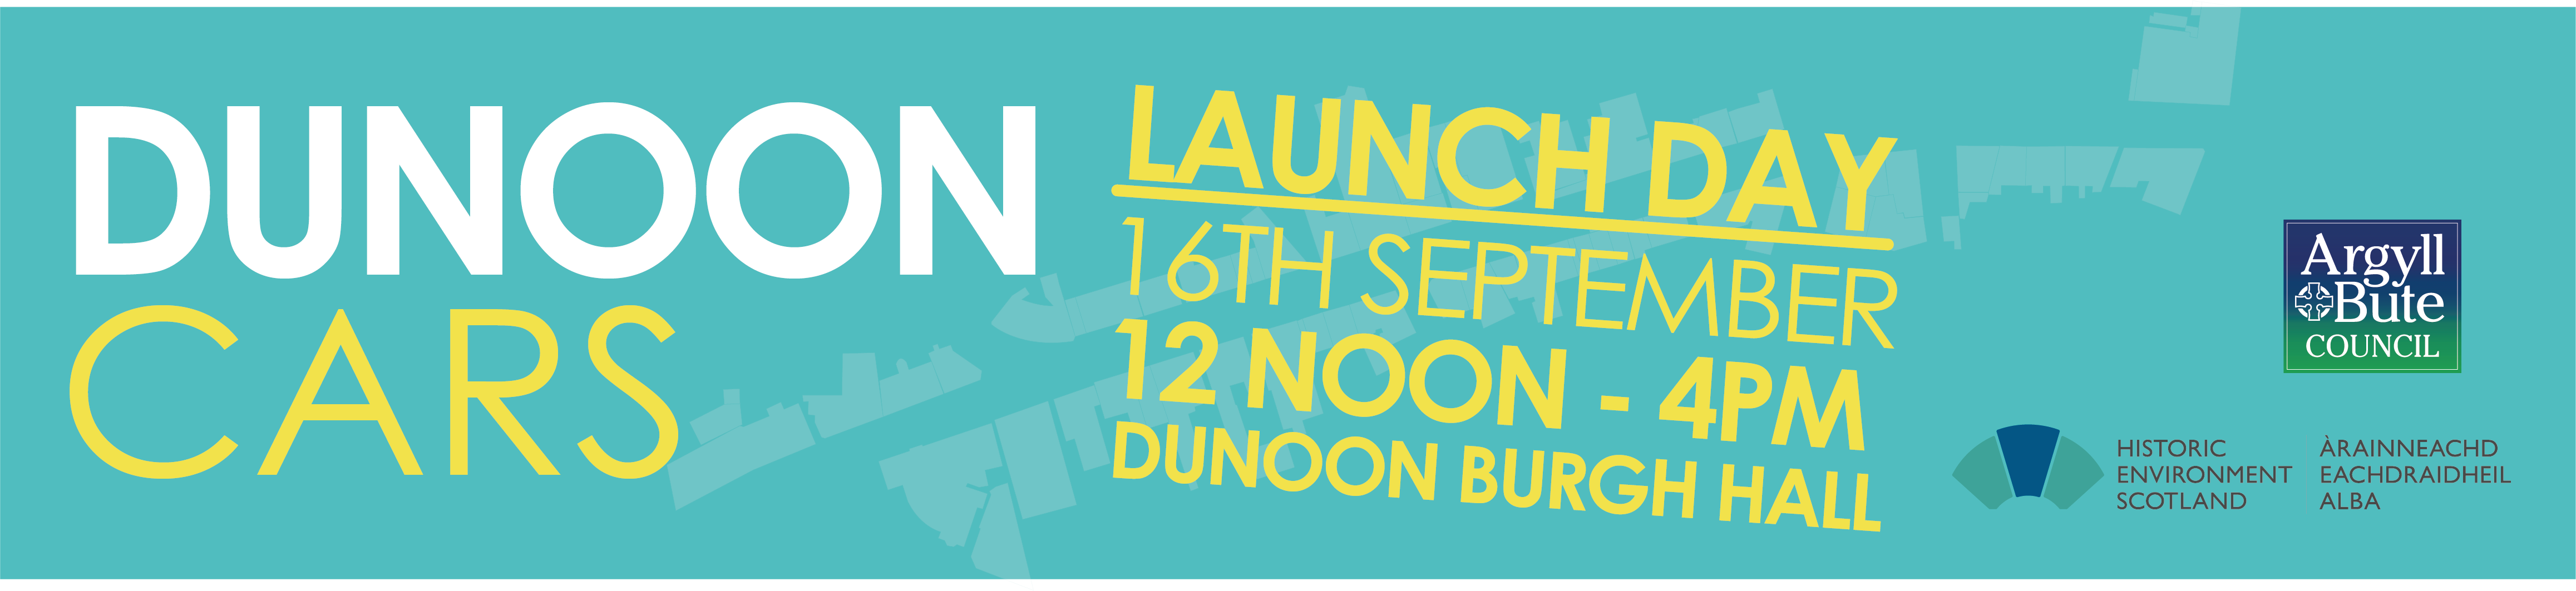 Dunoon CARS launch event